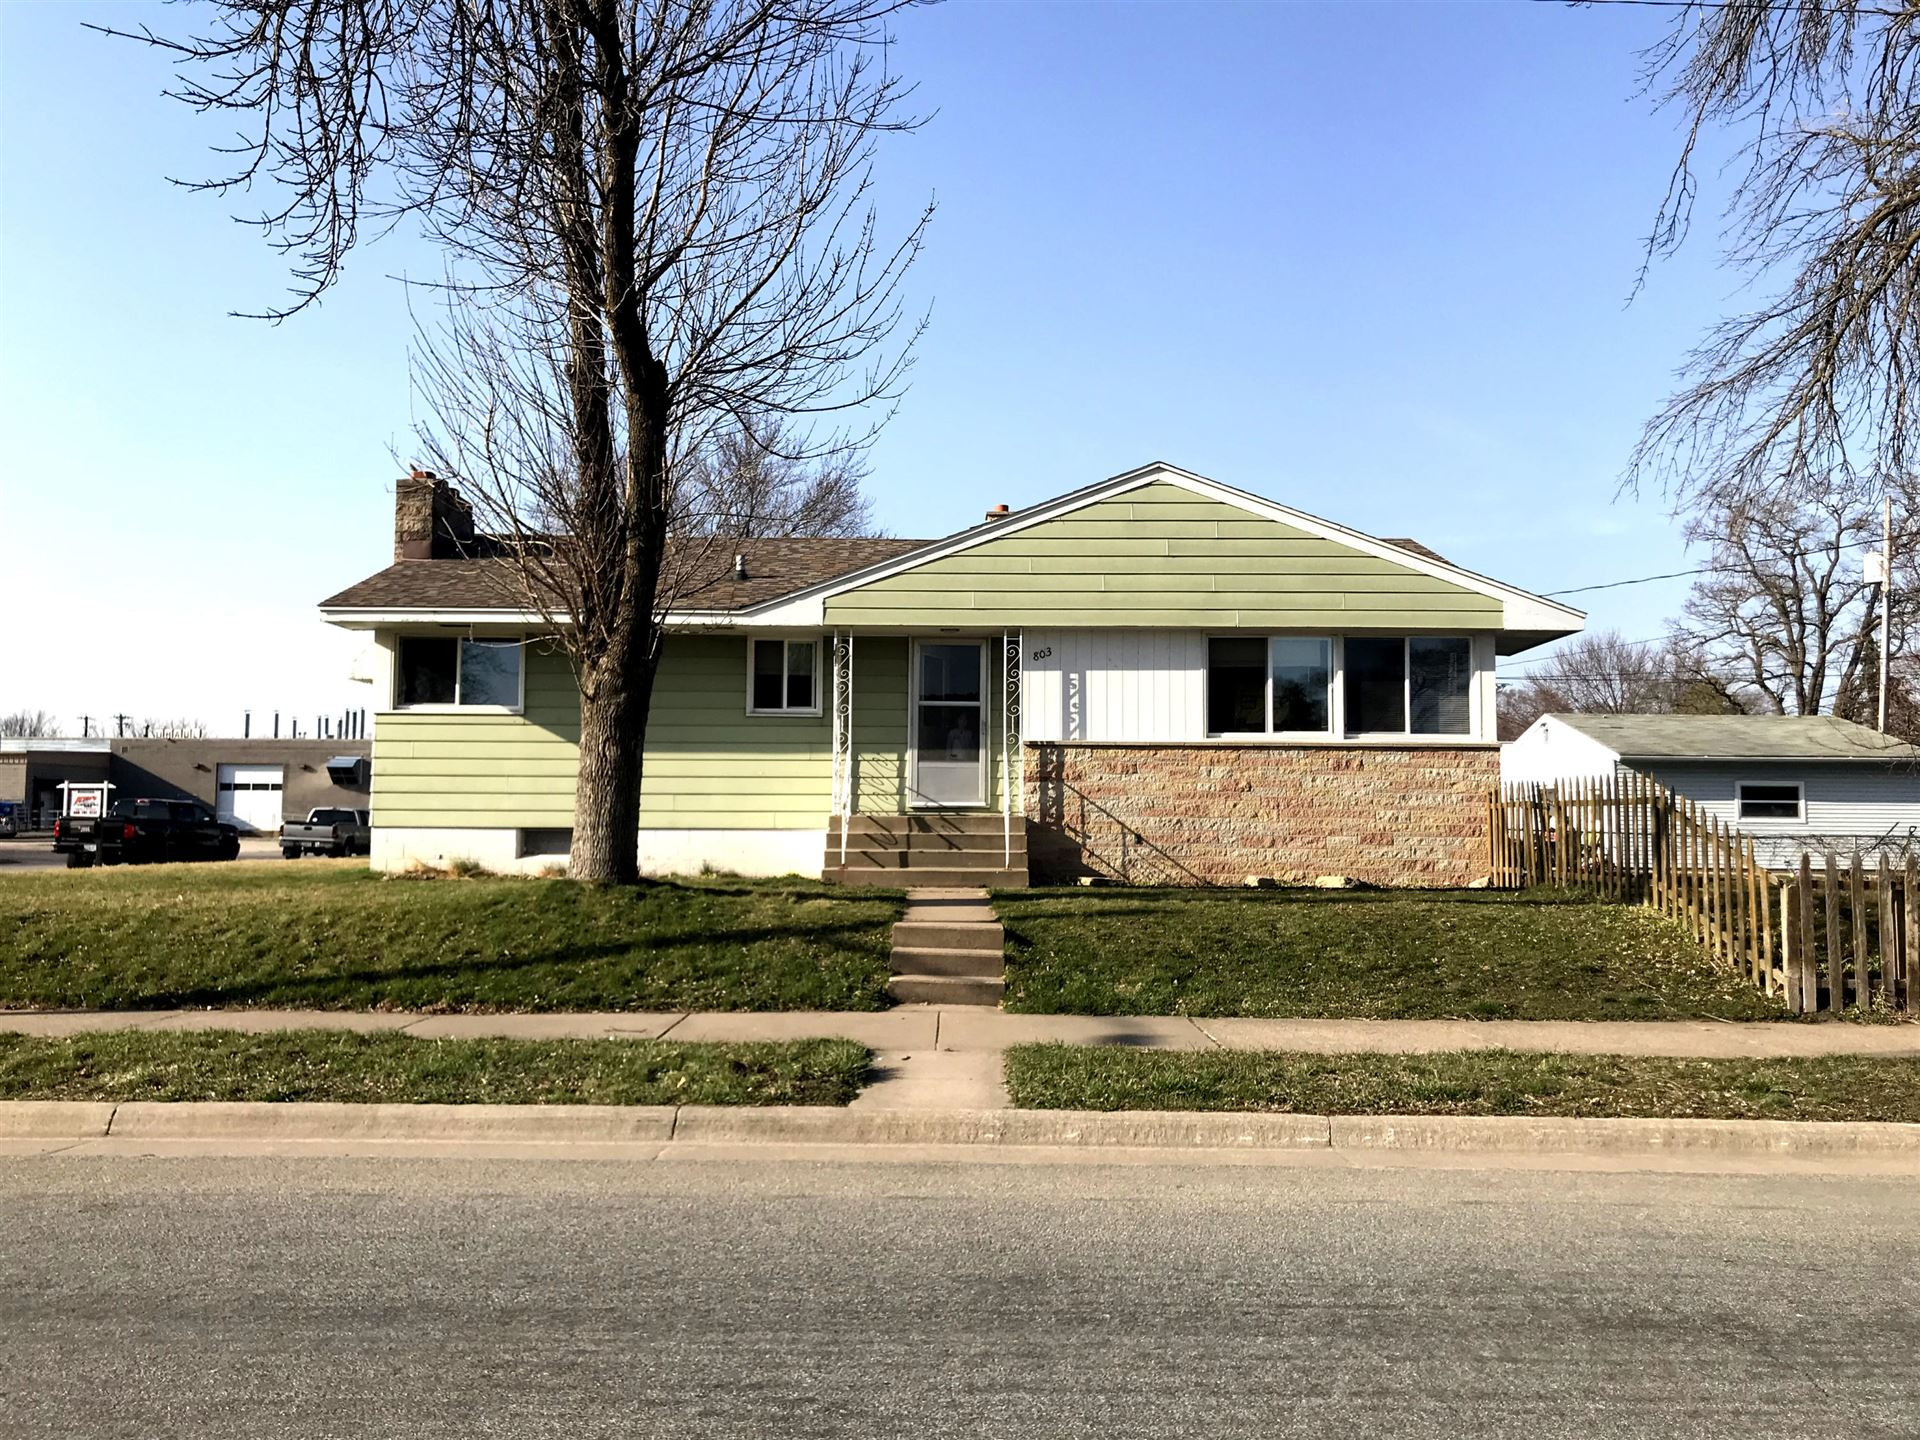 803 Livingston St, La Crosse, WI 54603 - MLS#: 1732921